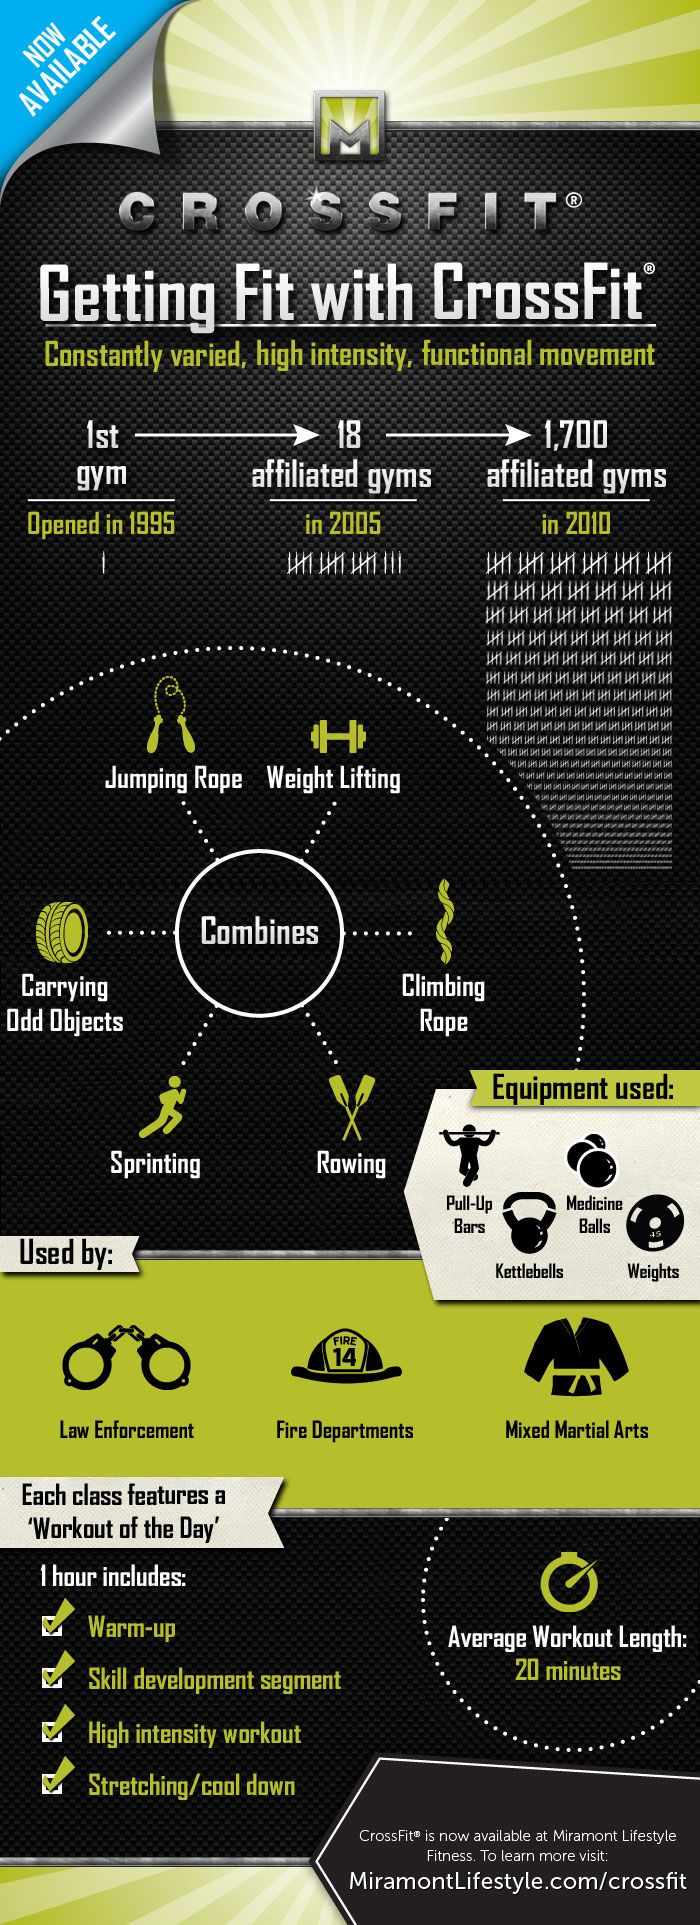 Crossfit is a type of training used that is considered high intensity. It is based on varied exercises and functional movement. The first Crossfit gym opened up in 1995 with the present time offering more than 1,700 affiliated gyms across the United States. For Crossfit enthusiasts everywhere, here is a series of Crossfit slogans and